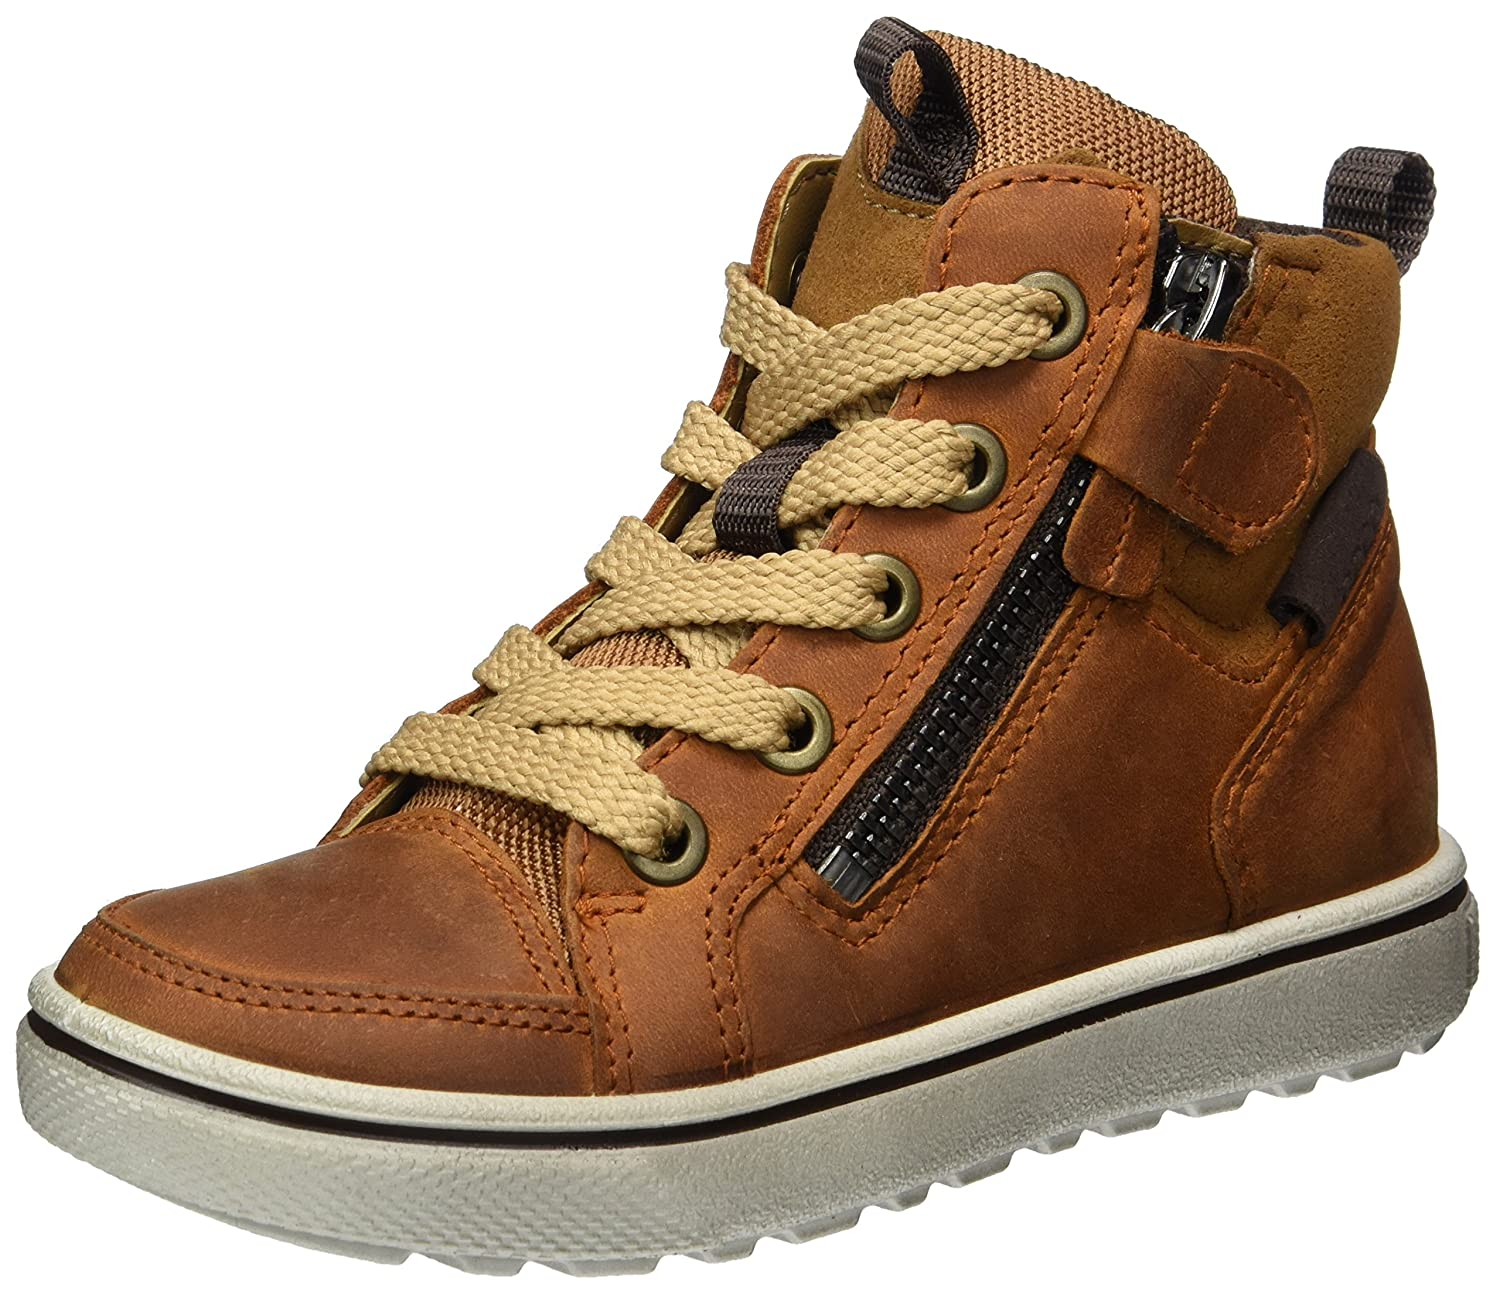 29537f83730 ECCO Boys' Glyder Hi-Top Trainers: Amazon.co.uk: Shoes & Bags